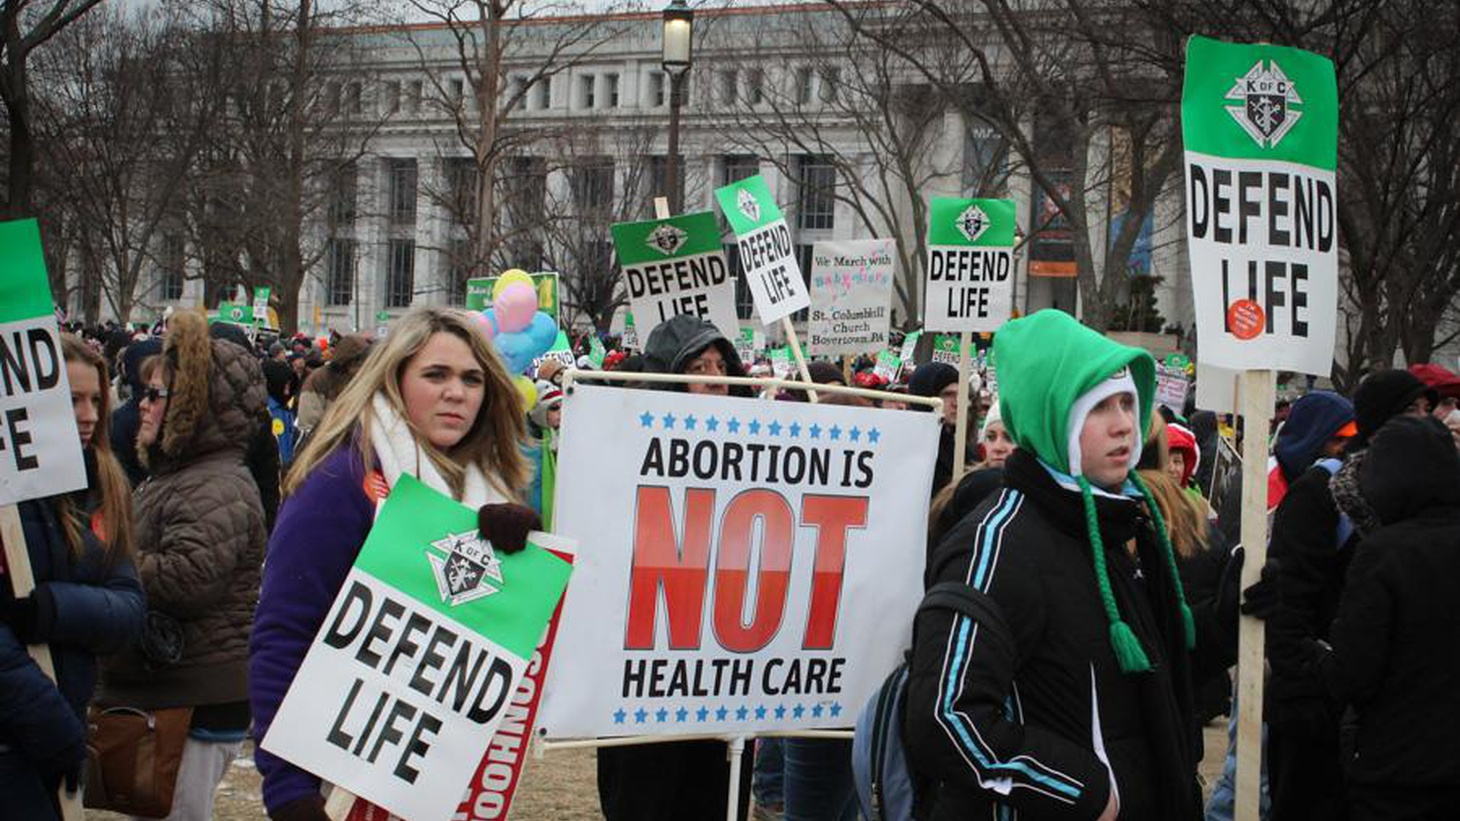 Republicans aren't backing away from opposing abortion. How's it likely to play in this year's midterm campaigns for the Senate and Congress.